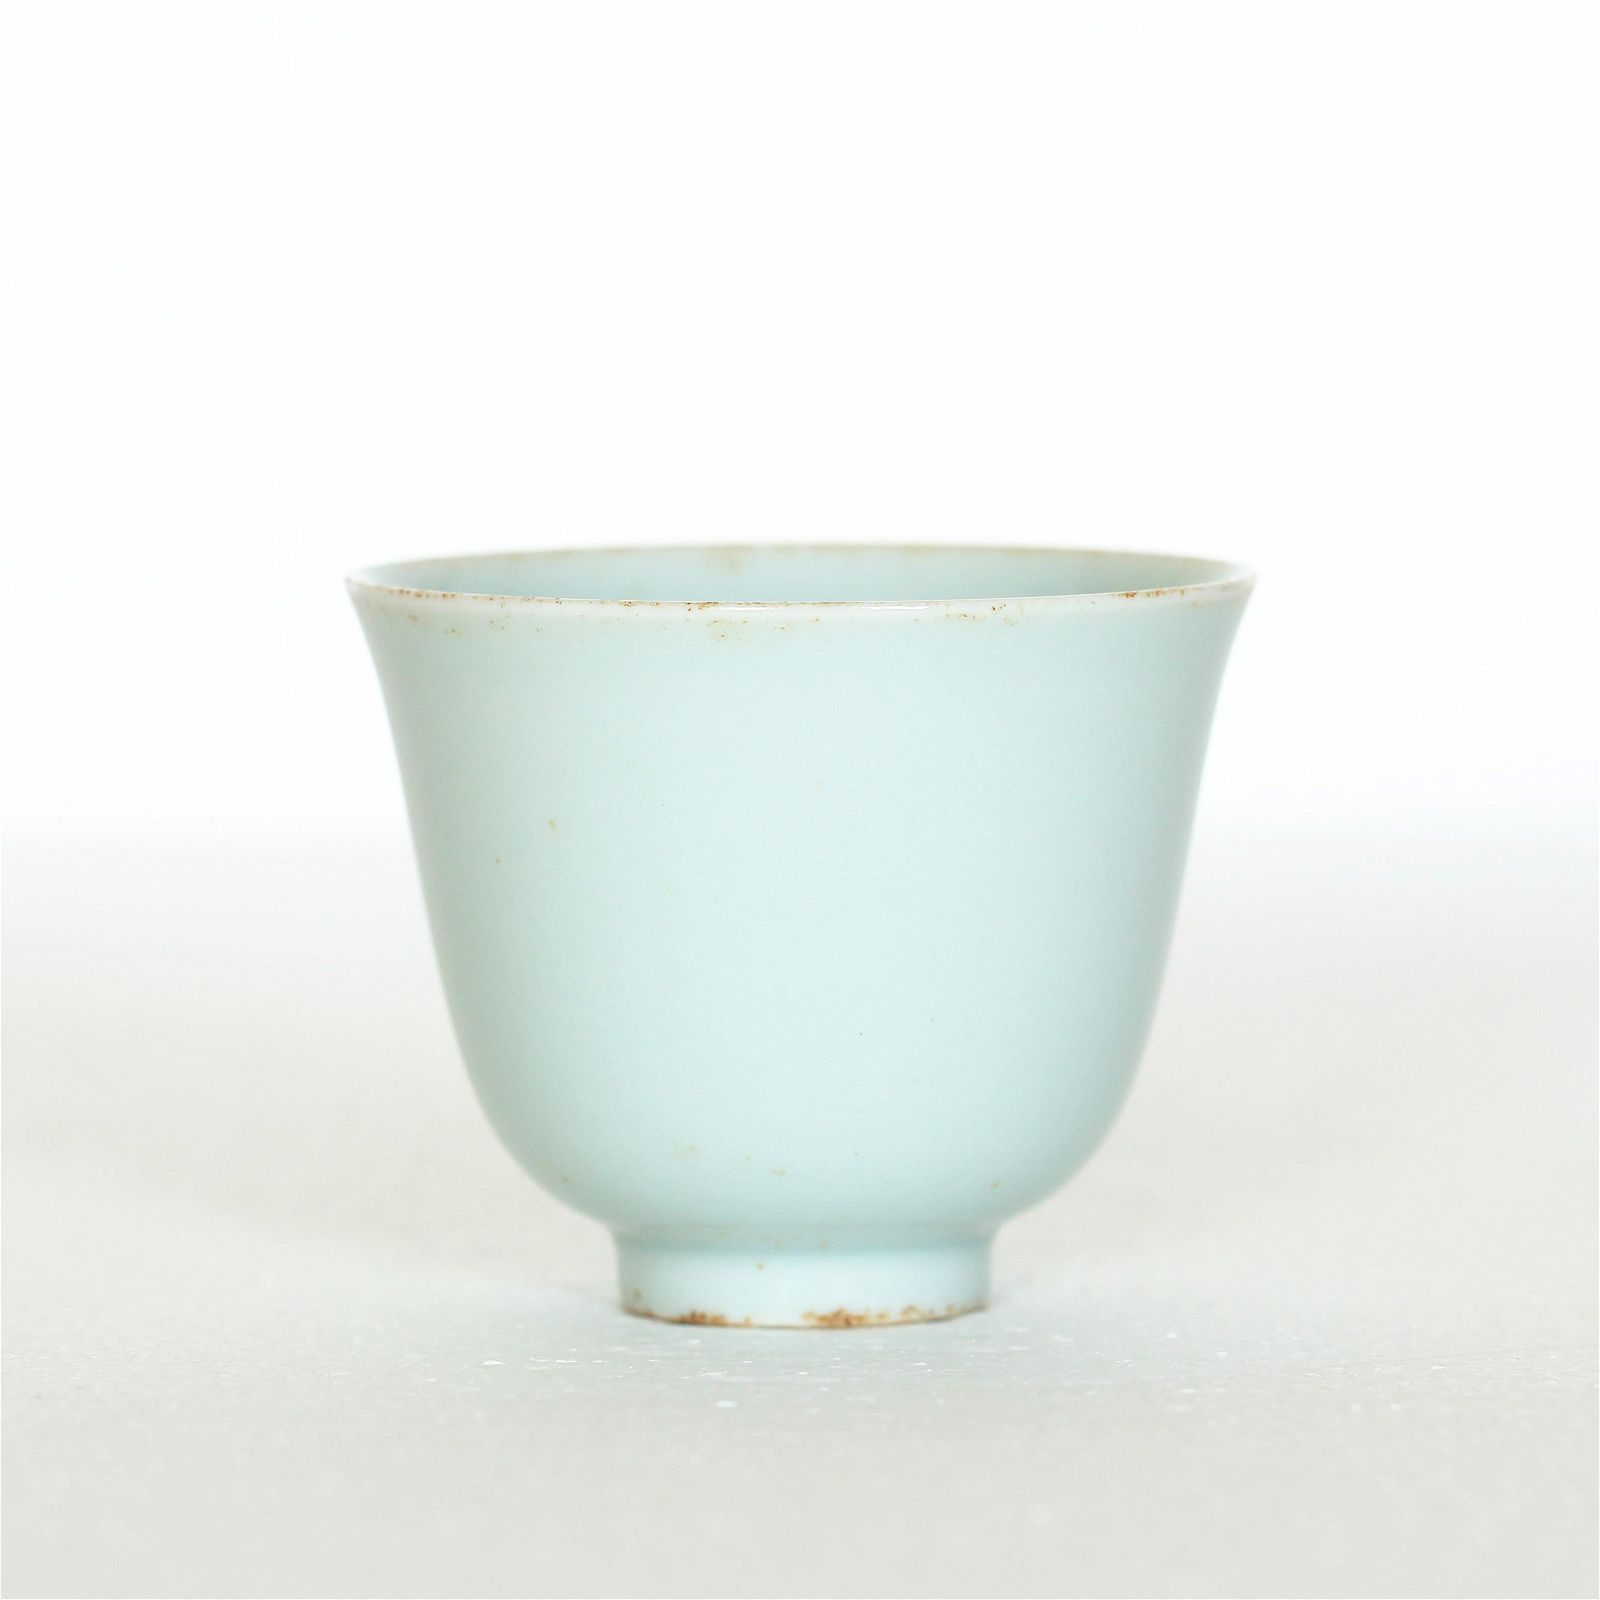 A Chinese Light blue glaze porcelain cup, Qing Dynasty